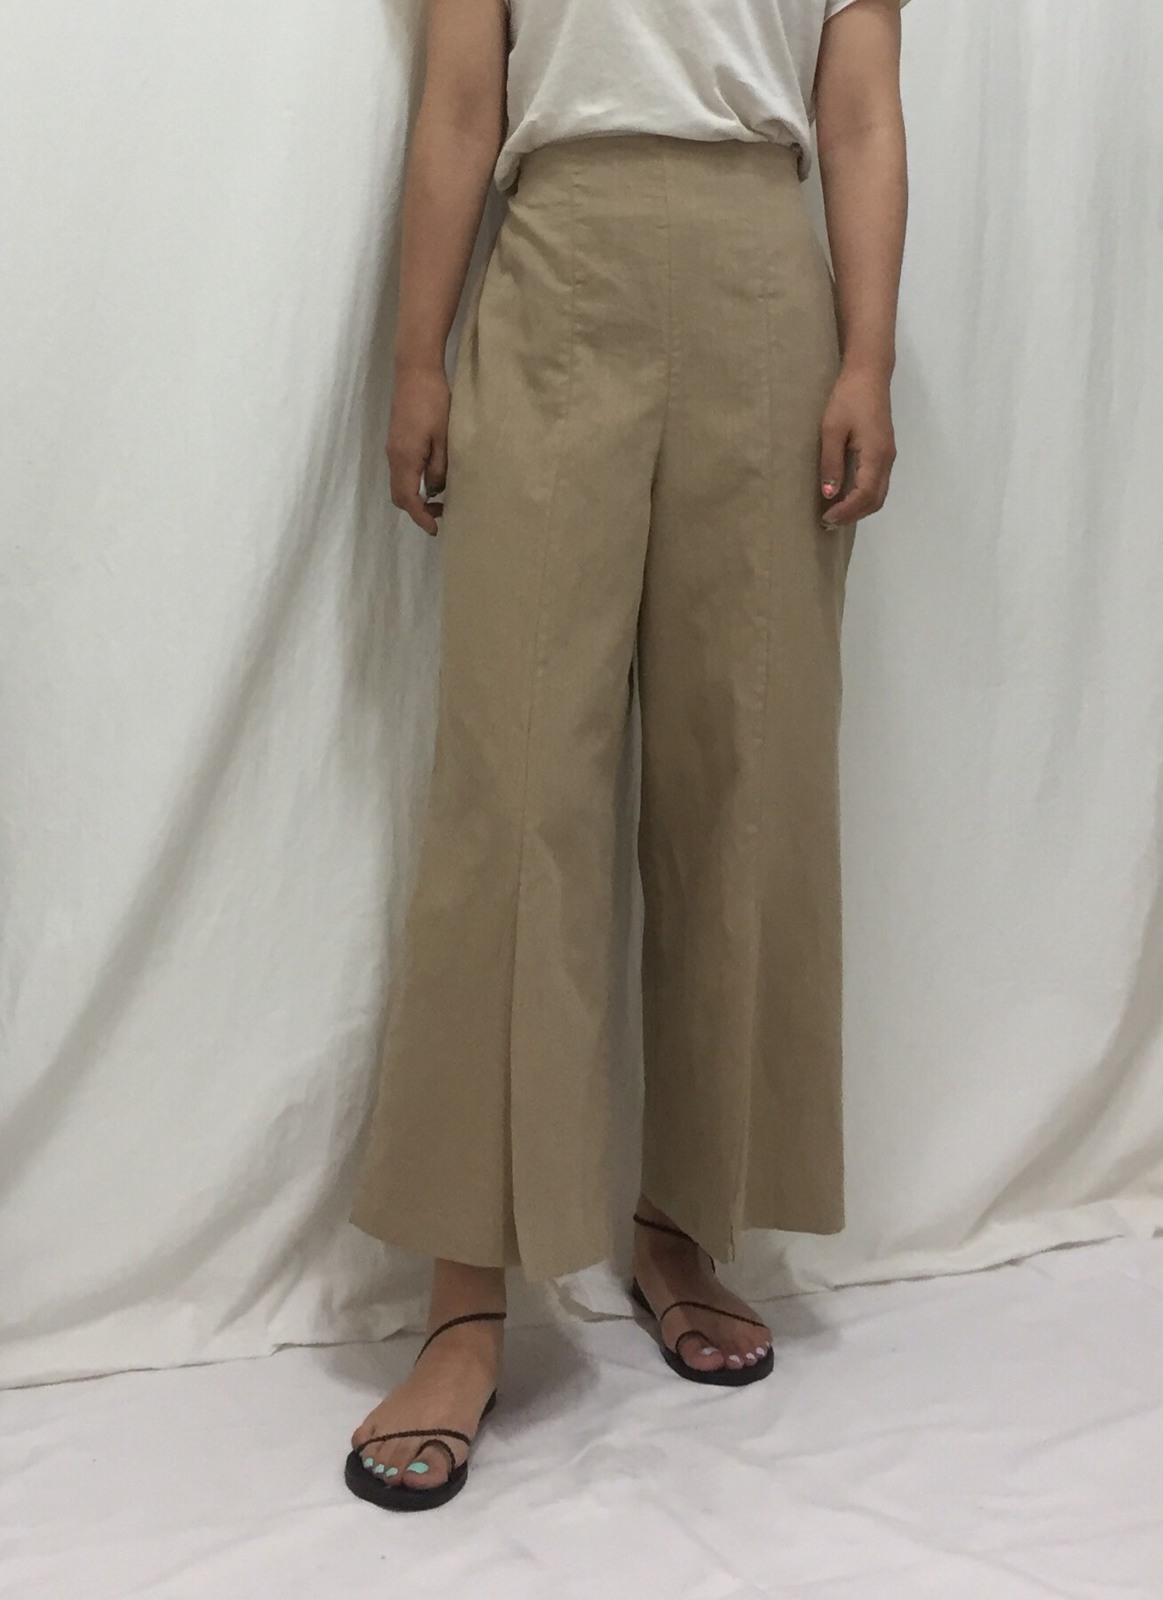 [Shoeming] Louis pants Pants Korean style